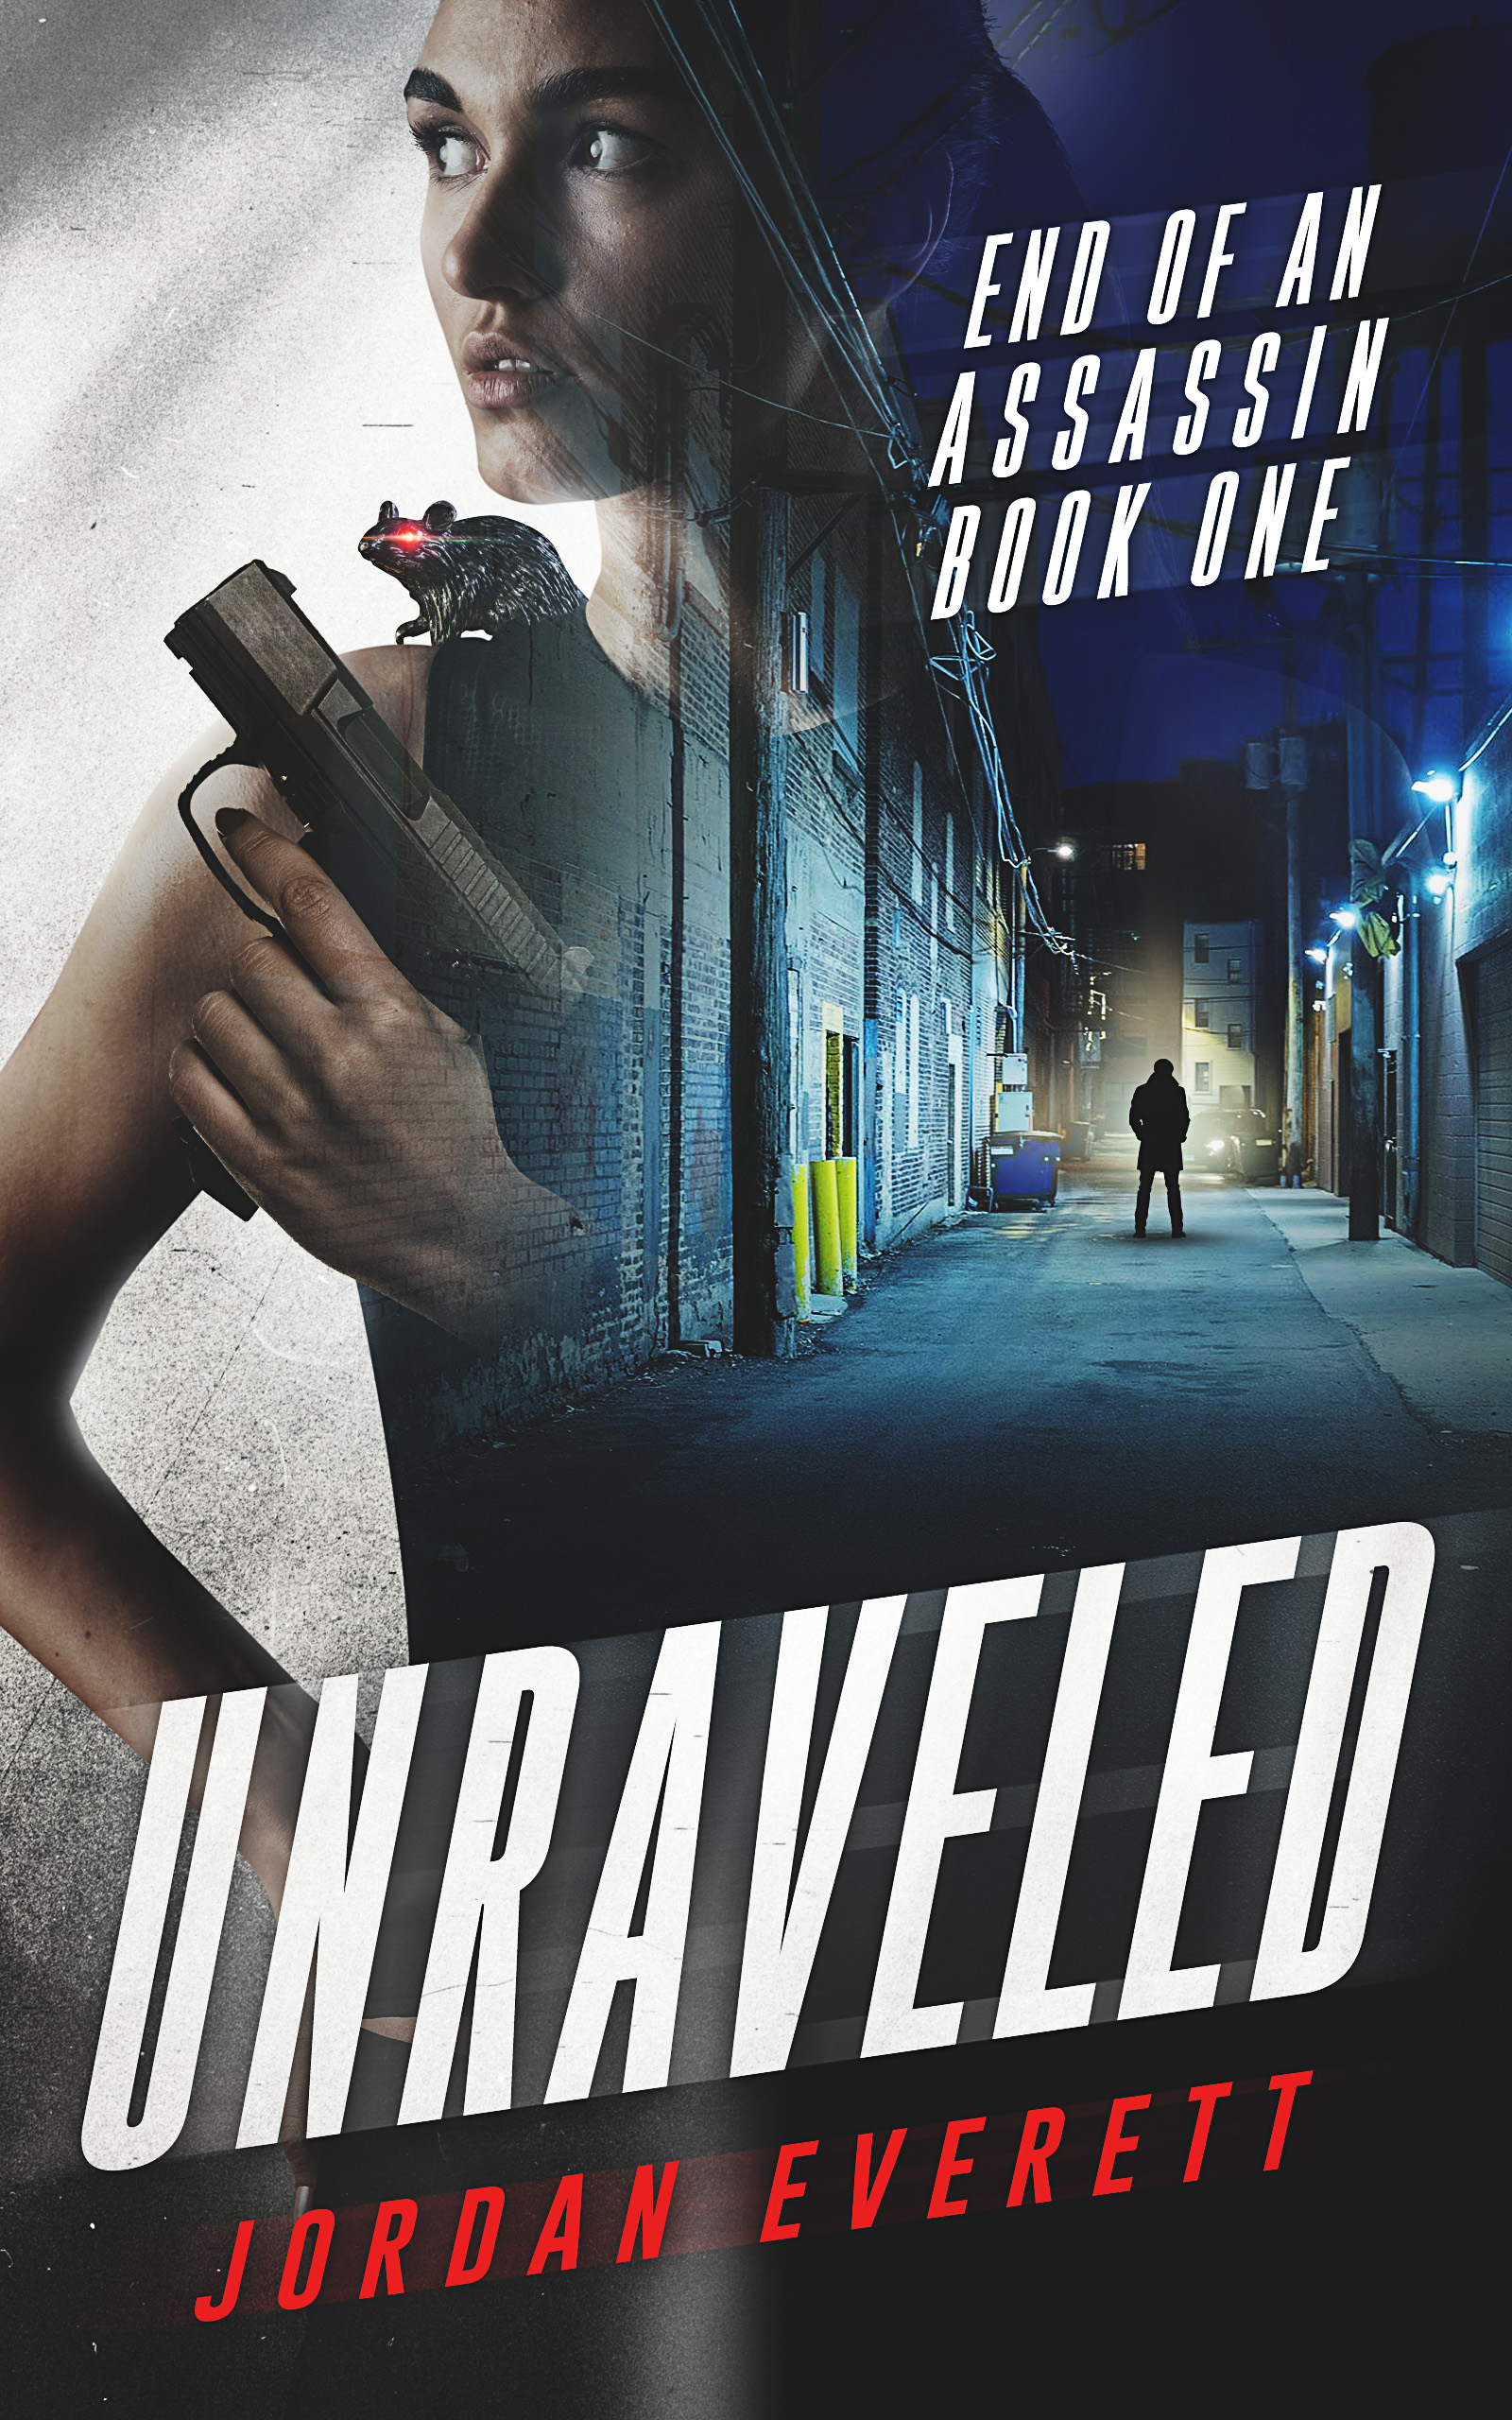 Unraveled by Jordan Everett End of an Assassin Book One On the left, a woman with a ponytail and a mouse with a red light for an eye sitting on her shoulder stands with a gun held up in front of her. It fades into the right, where a silhouette of a man stands in a dark alley in the distance with a streetlight shining down on the street behind him.